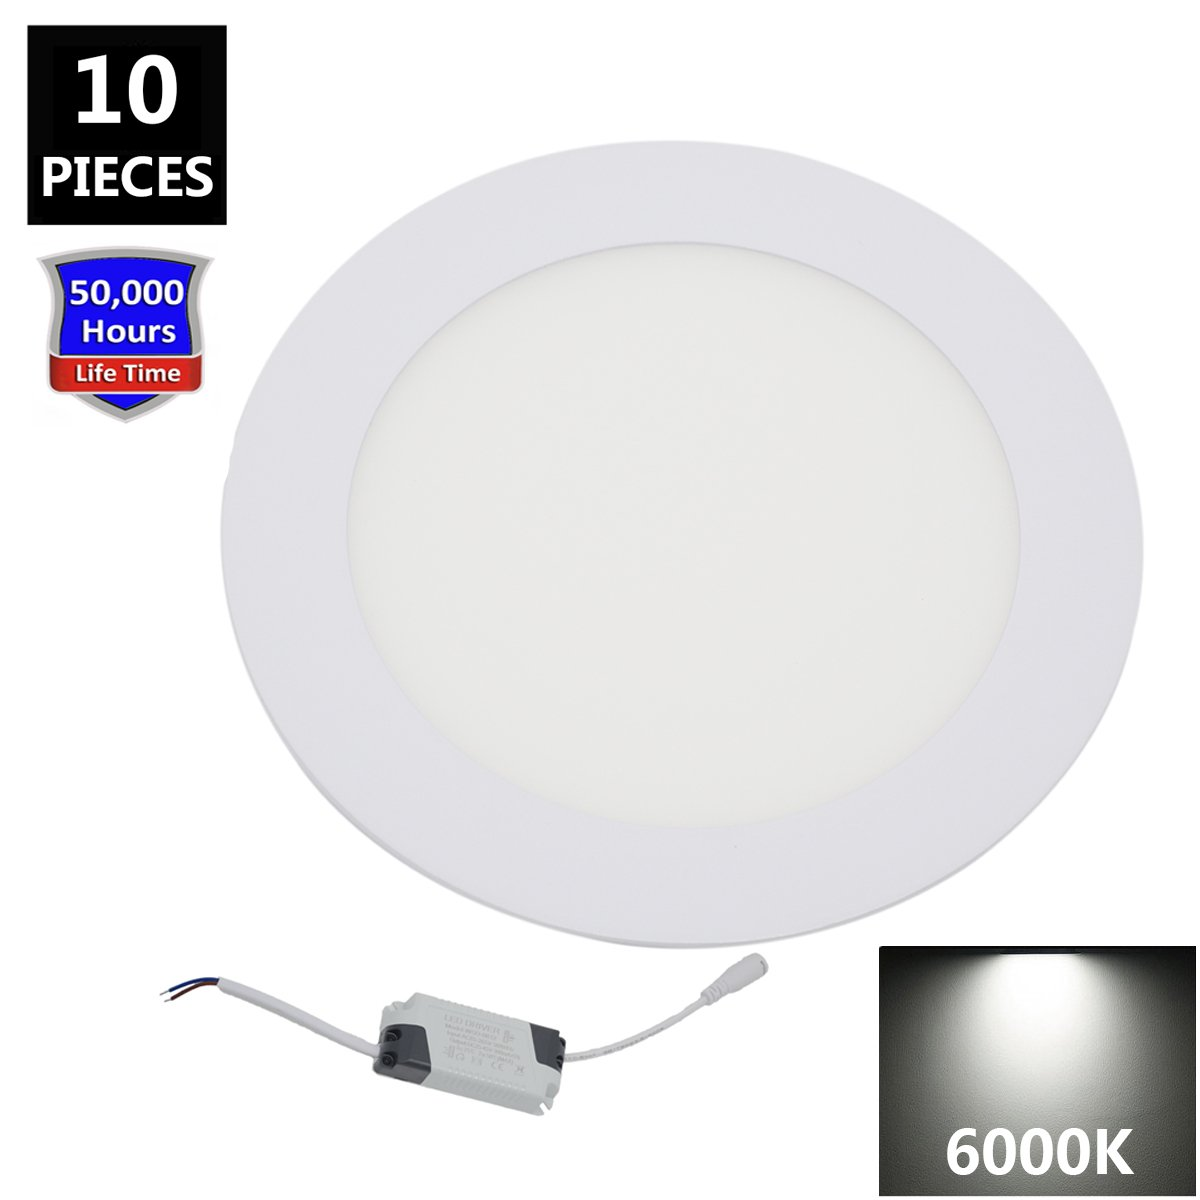 15W 6 Inch Recessed LED Ceiling Light, Ultra-thin LED Downlight, 1200LM 6000K Cool White, Indoor lighting Round led panel light, 100w Equivalent for Home Kitchen (Pack of 10)